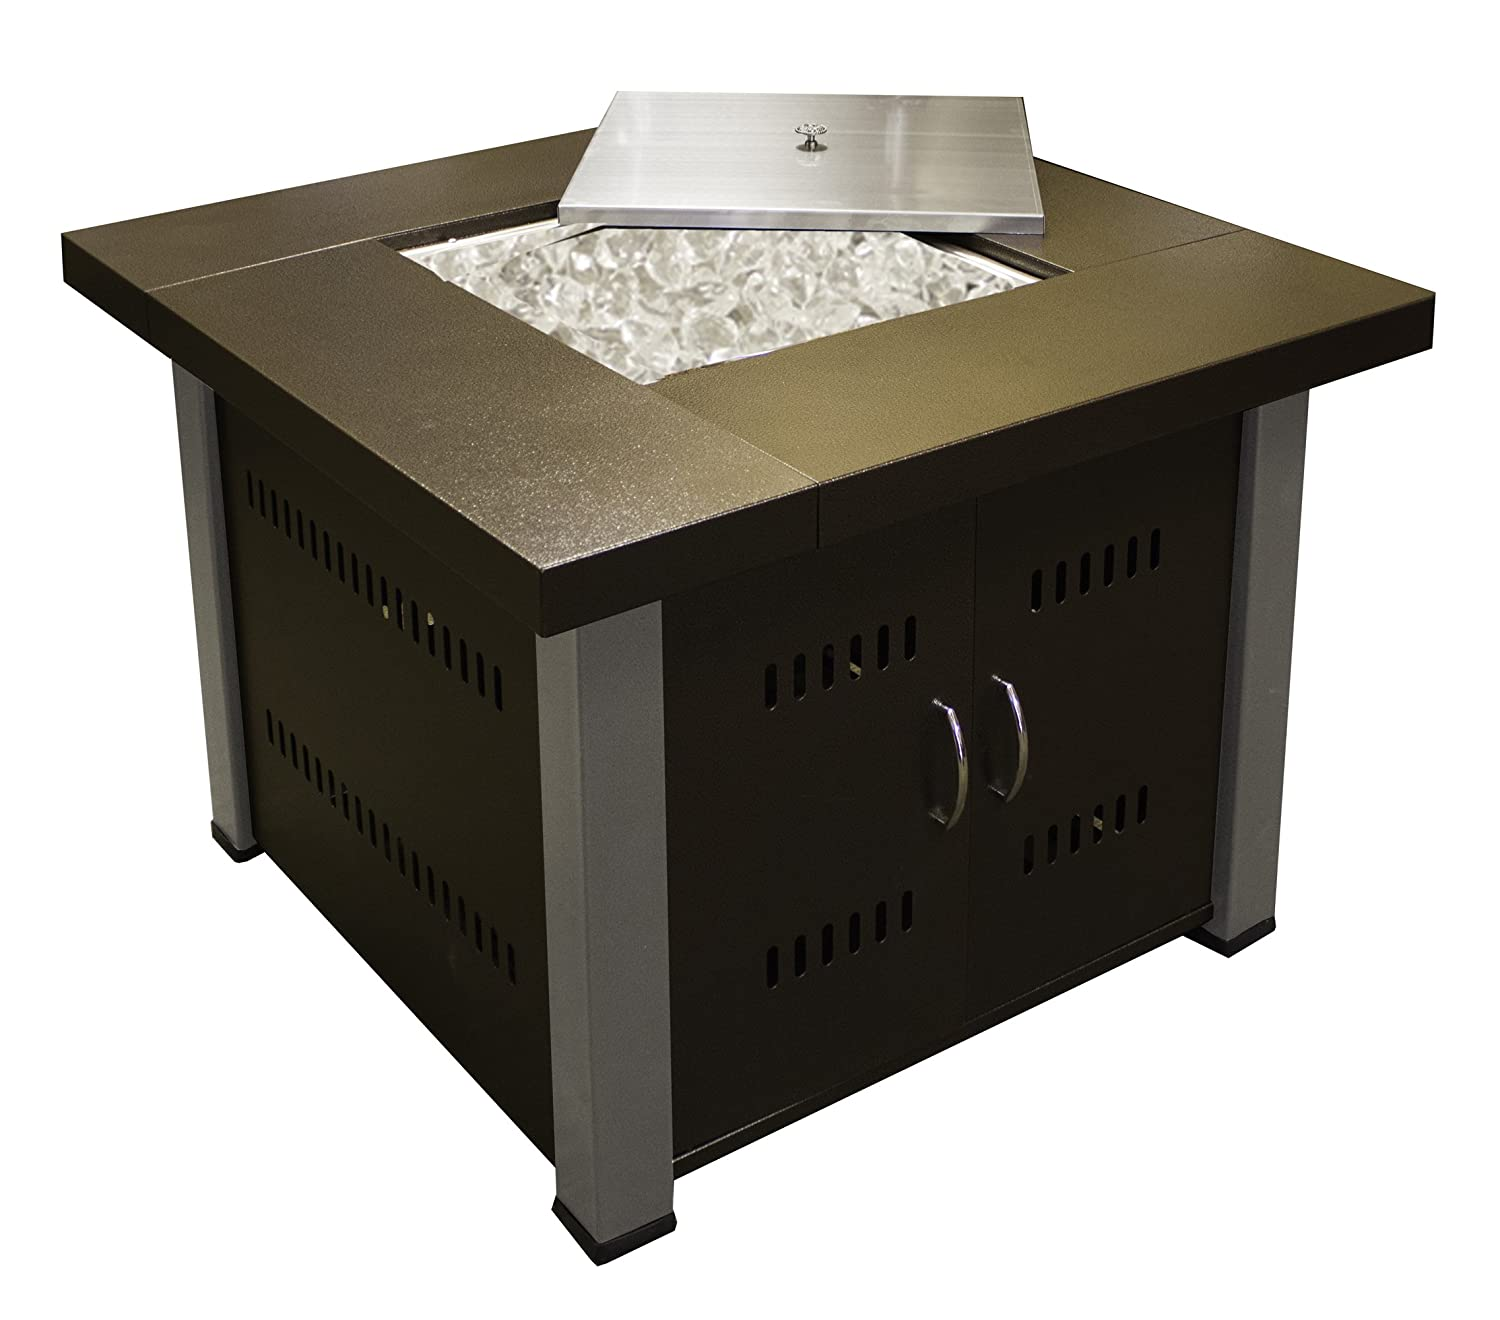 High Quality Amazon.com : AZ Patio Heaters Fire Pit, Propane In Two Tone Hammered Bronze  And Stainless Steel : Gas Fire Pit : Patio, Lawn U0026 Garden